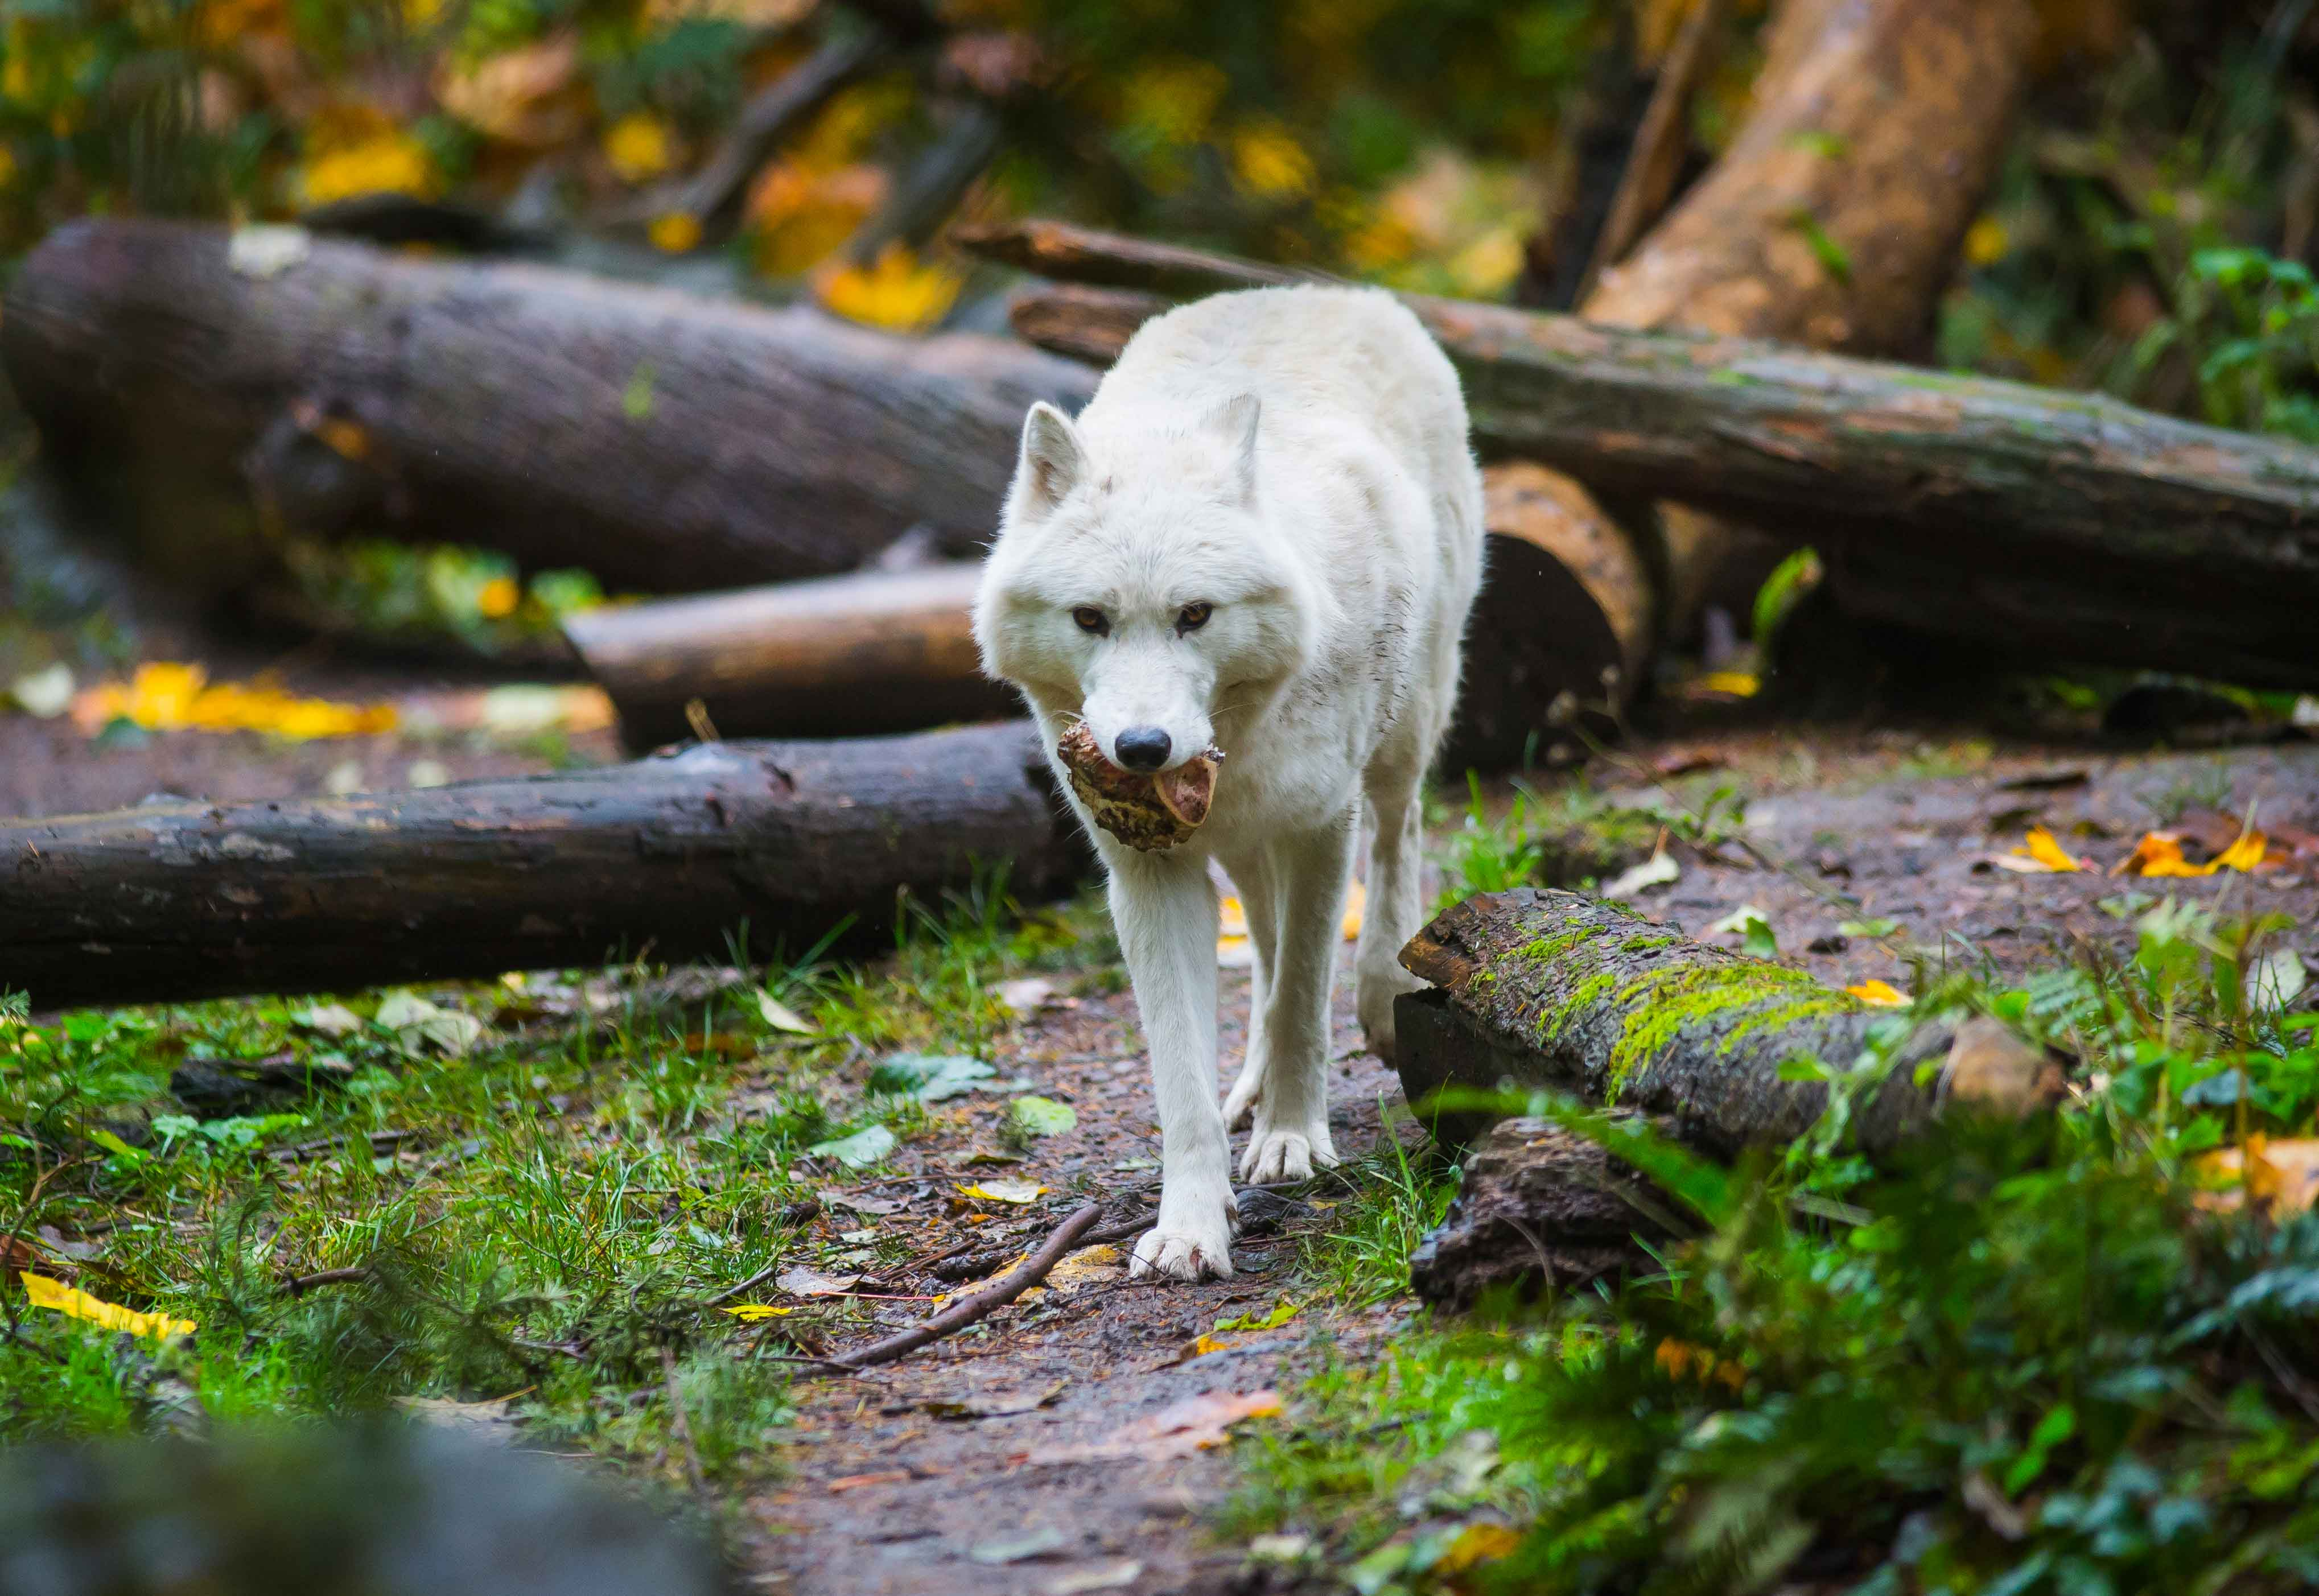 Canines at Northwest Trek: gray wolves, red fox